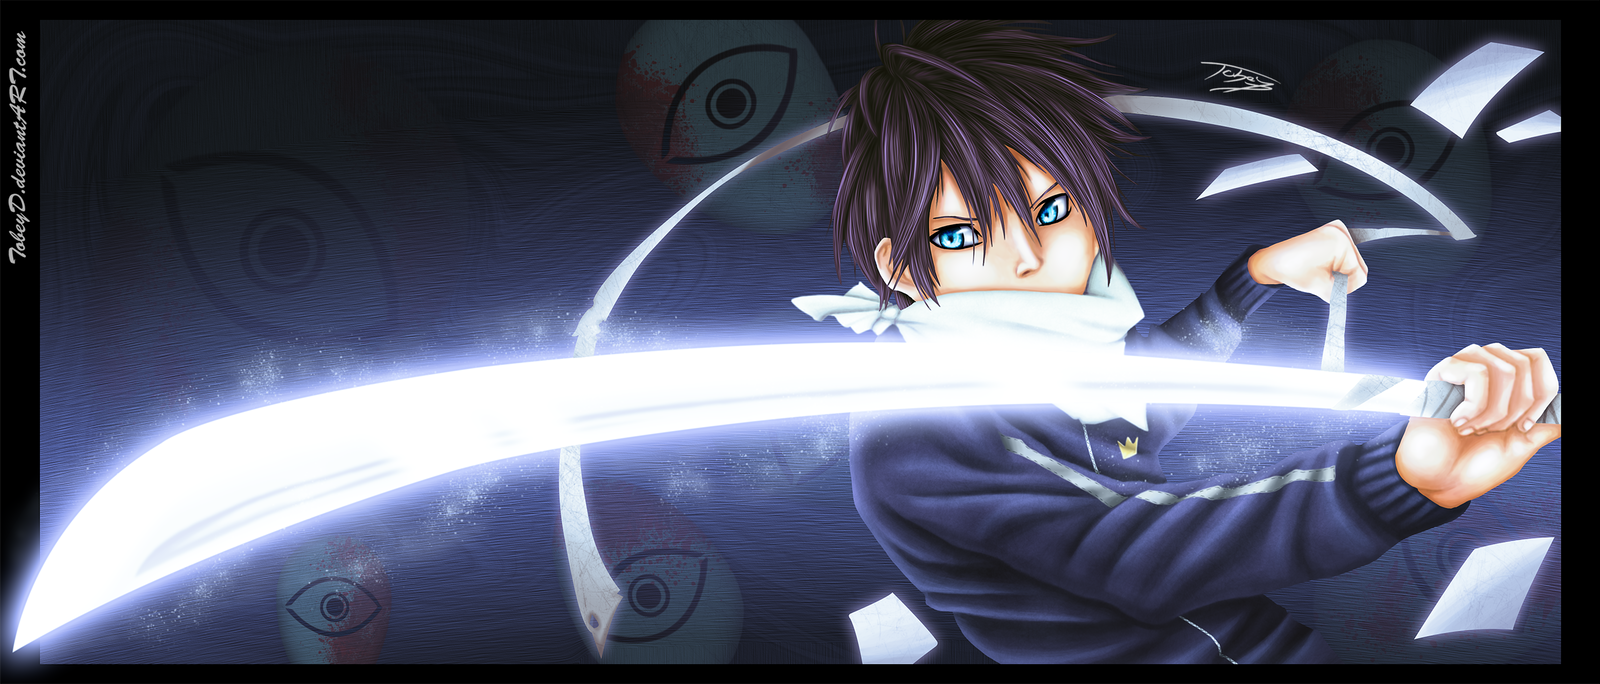 ROL GANZTER - CAPITULO 8 Yato_and_sekki_by_tobeyd-d7v17r7